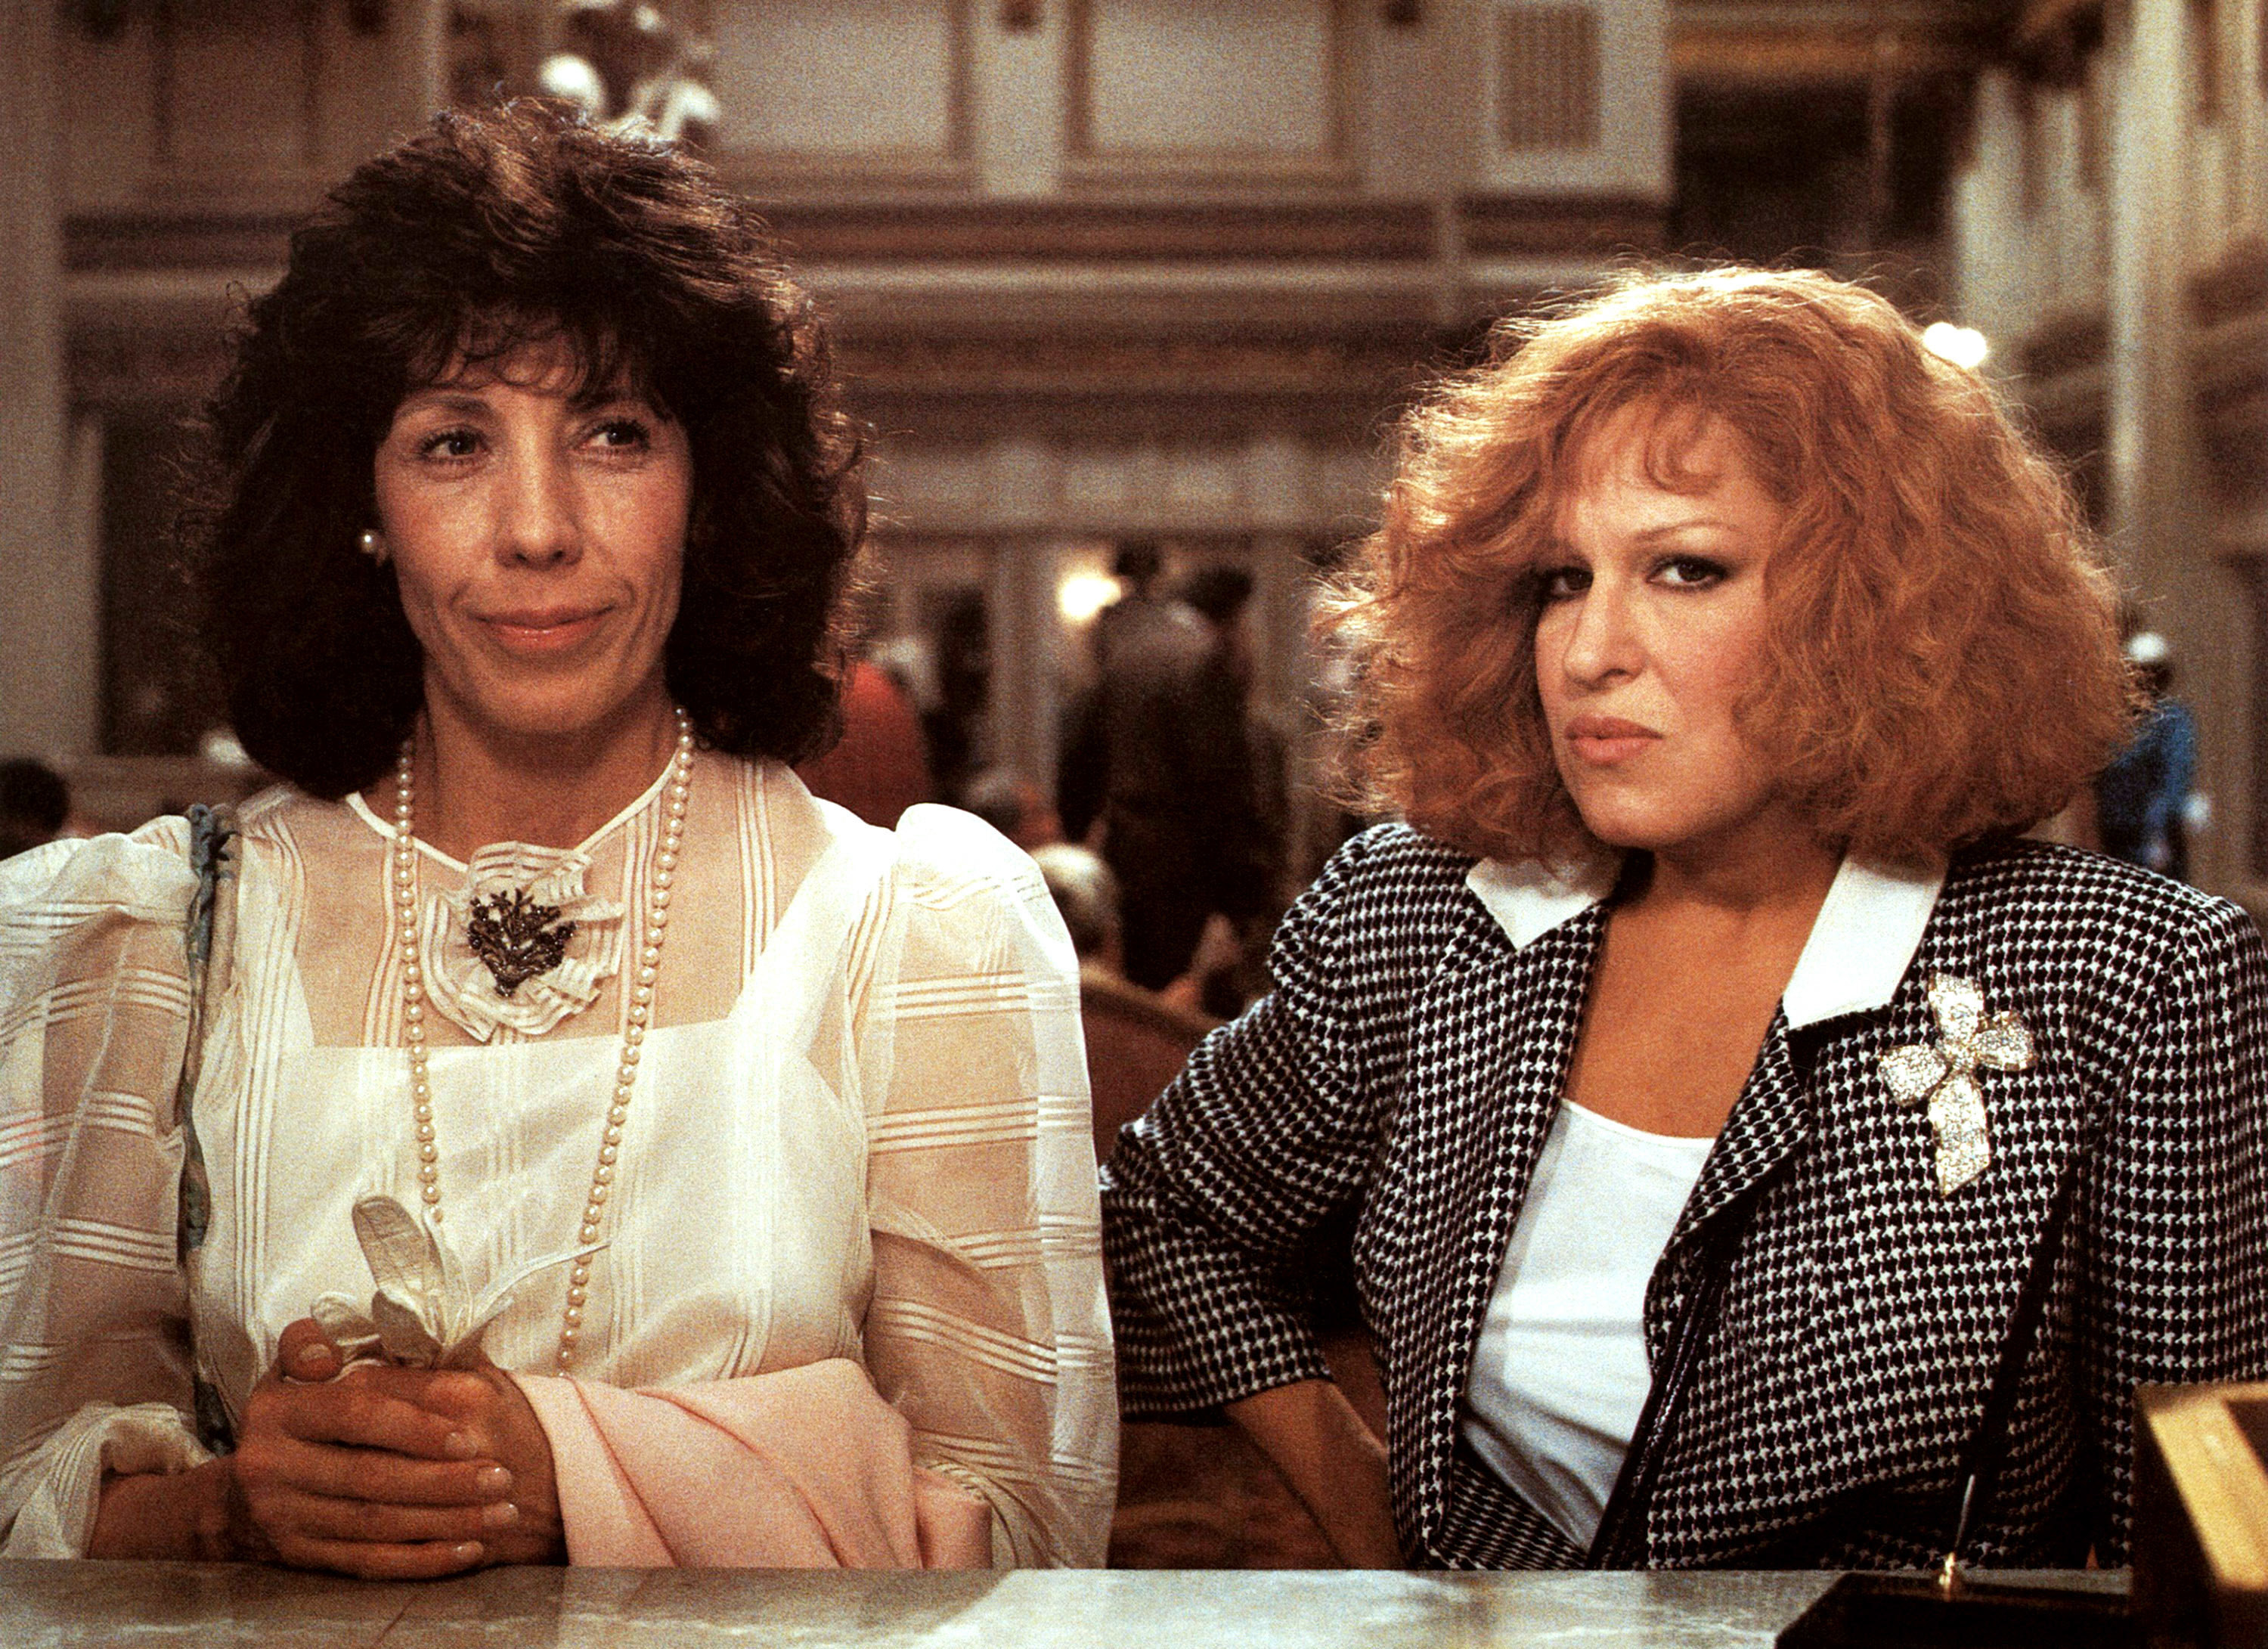 Lily Tomlin and Bette Midler stand at a counter